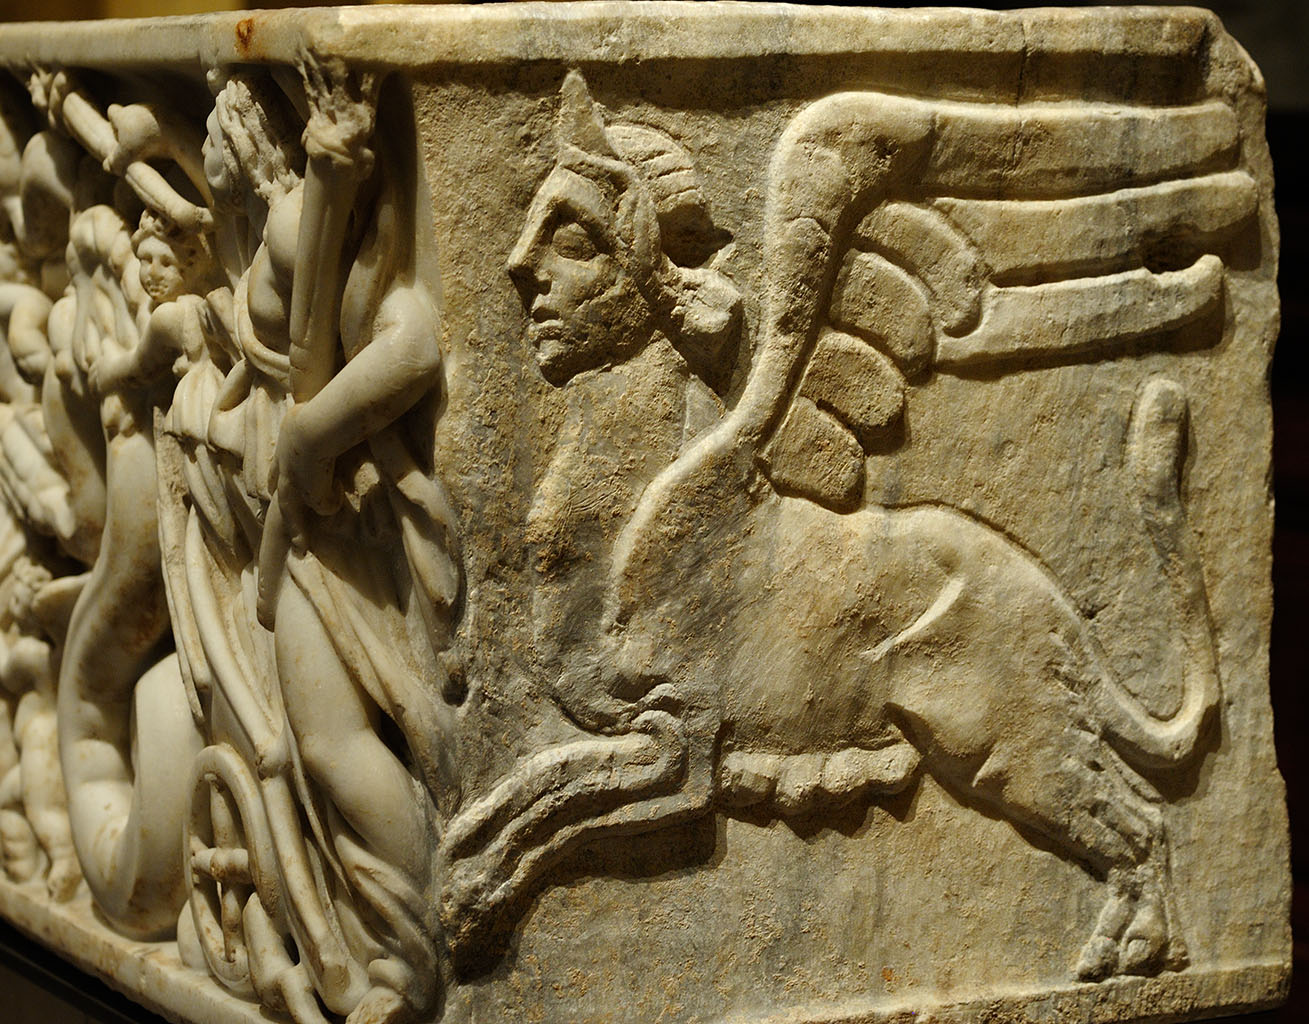 Side panel of a sarcophagus with a scene of abduction of Persephone by Hades. Marble. Beginning of the 3-в cent. CE. Inv. No. I 1126. Vienna, Museum of Art History